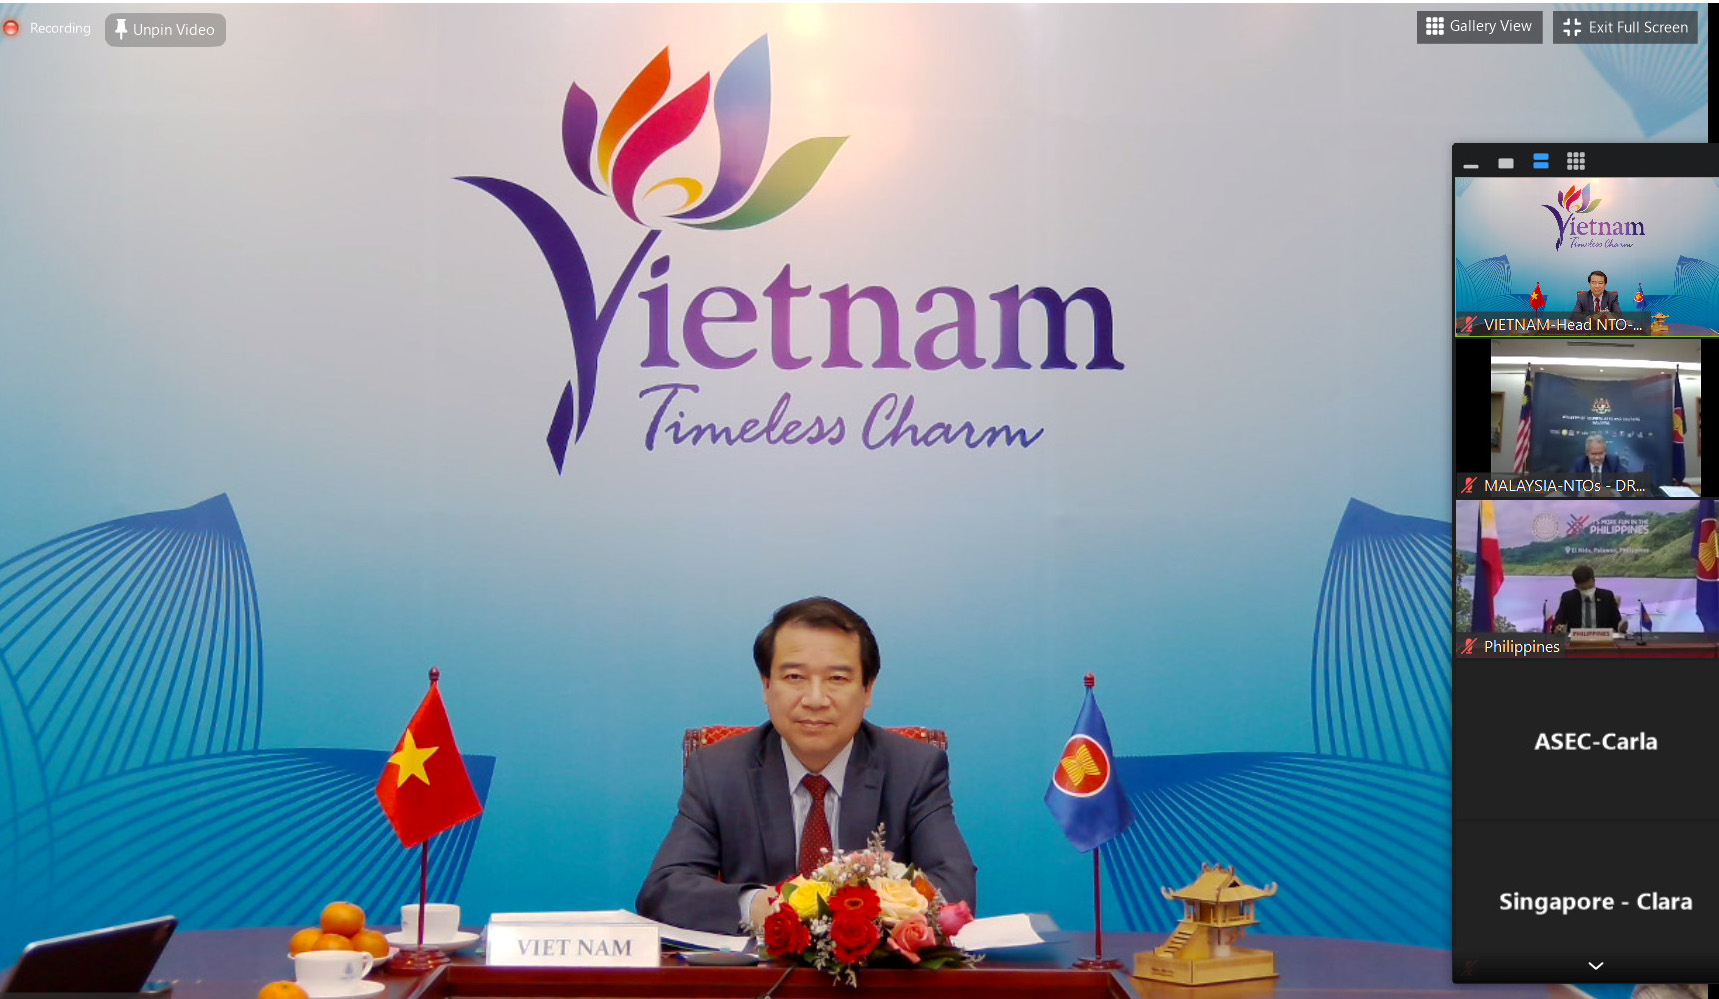 VNAT's Vice Chairman Ha Van Sieu attends 53rd ASEAN NTOs Meeting